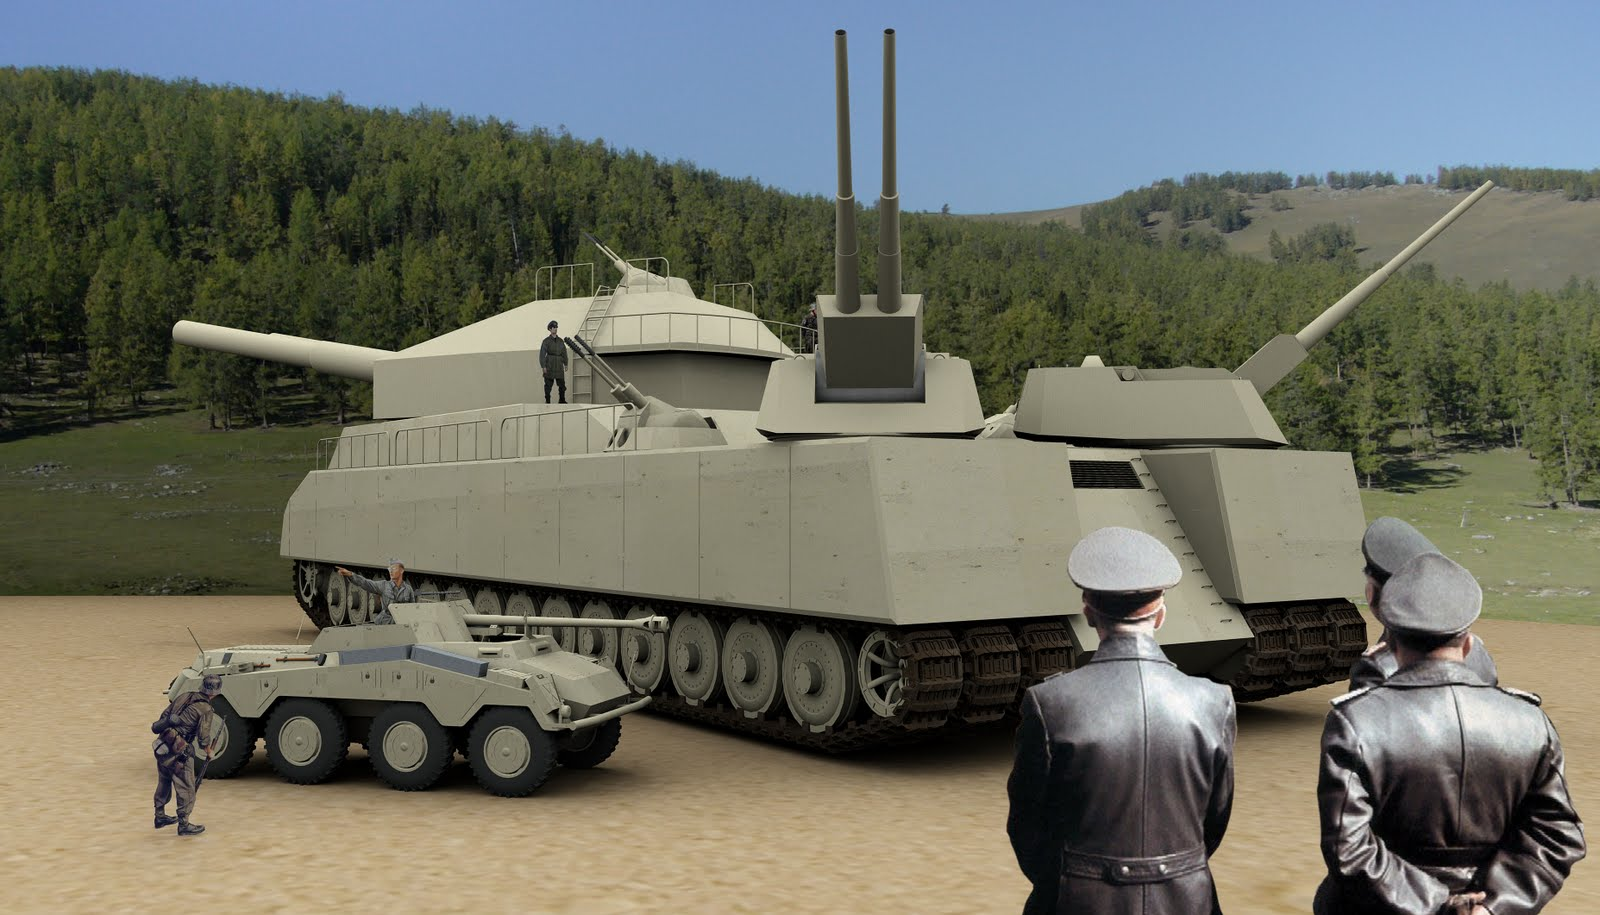 The insane Ratte, artistic impression ( https://www.warhistoryonline.com/war-articles/landkreuzer-p-1000-ratte-hitlers-idiotic-heavy-tank-design.html )